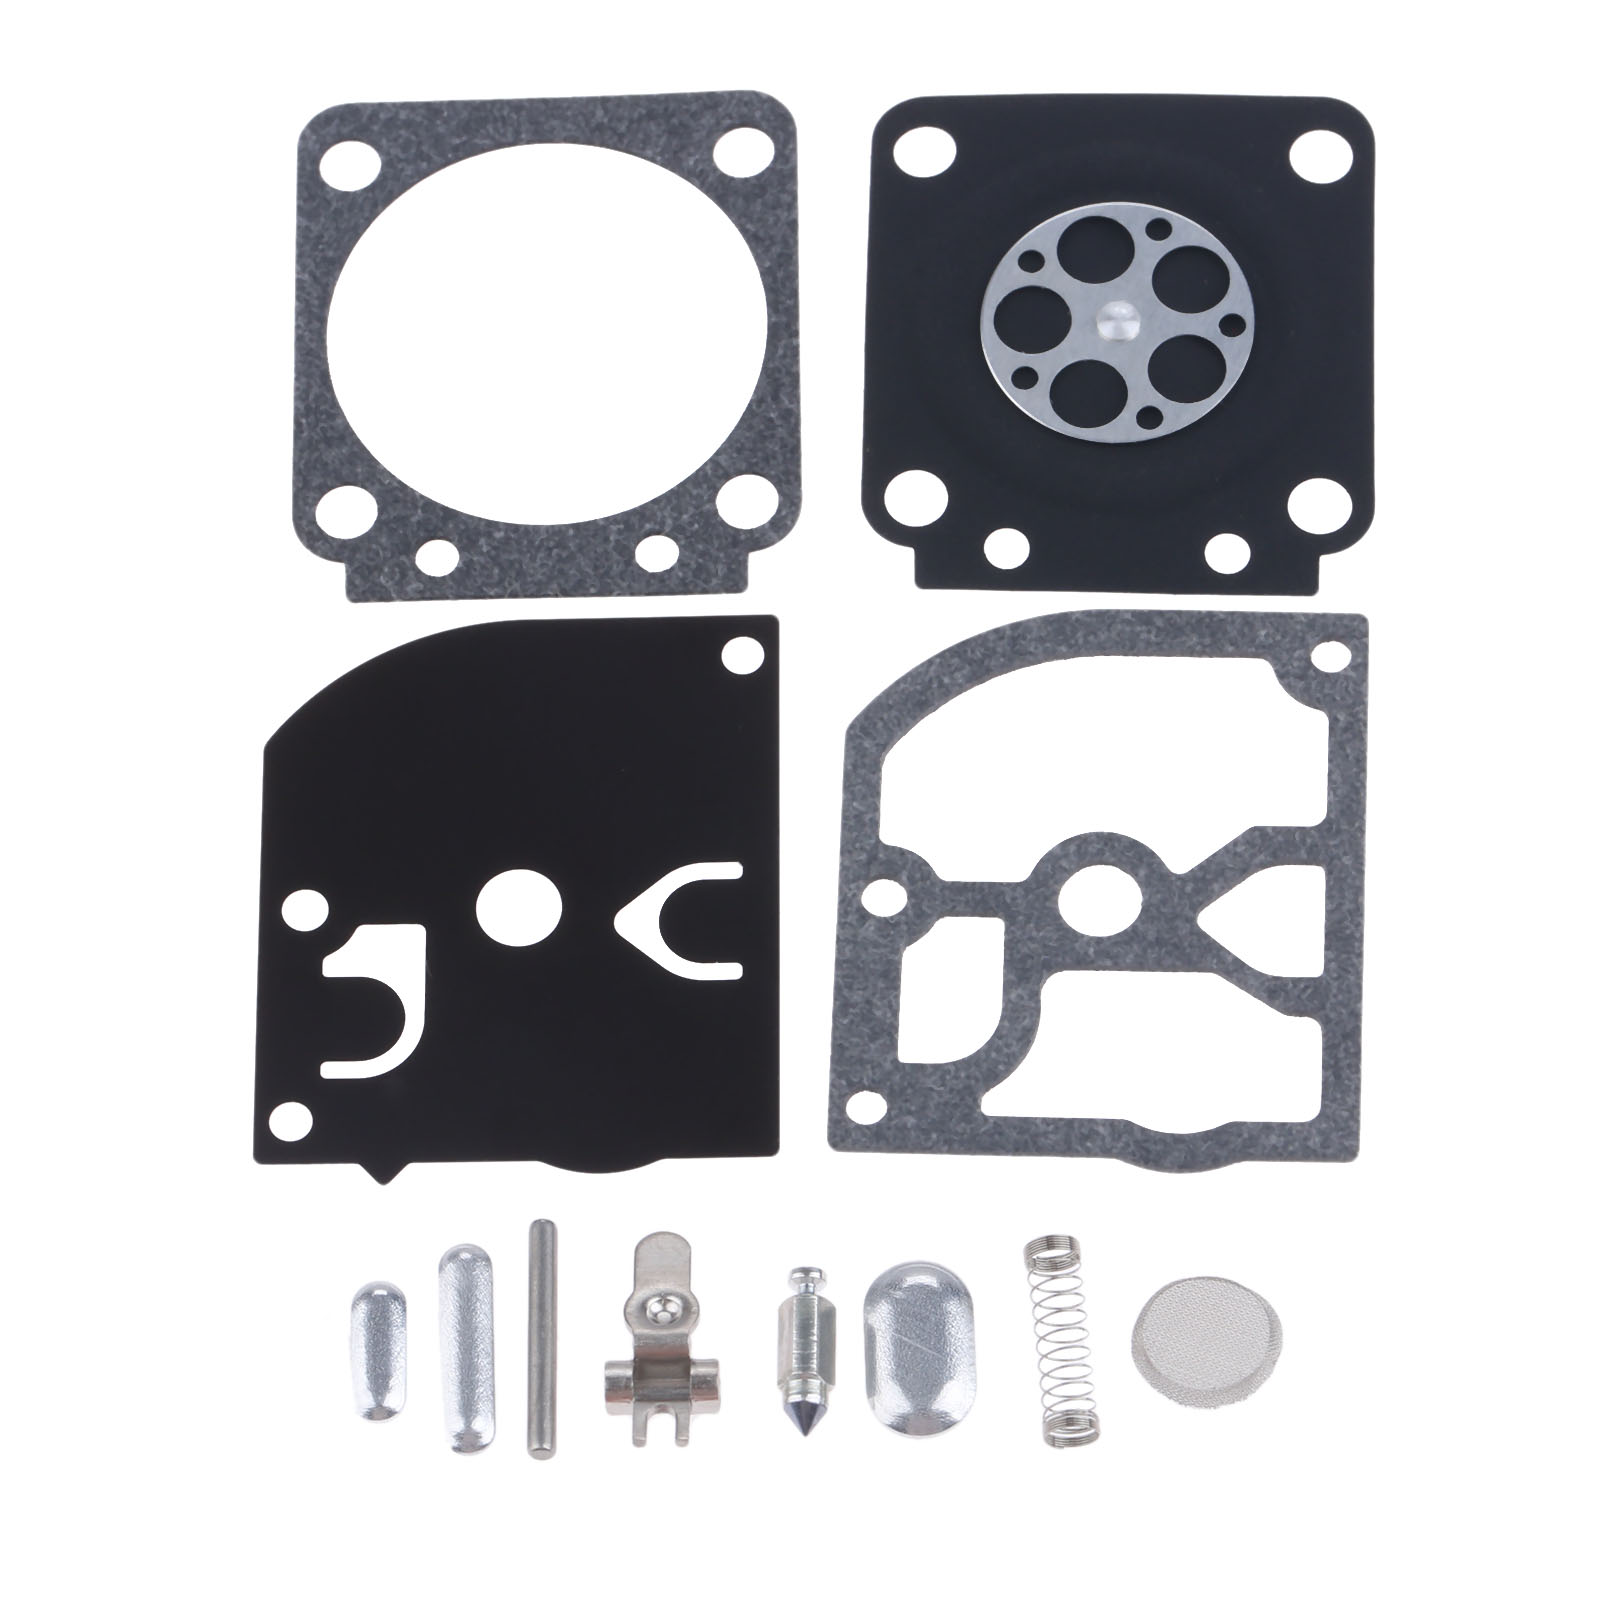 DRELD RB-66 Carburetor Rebuild Repair Kit For Zama RB-66 STIHL 017 MS170 018 MS180 FS75 FS80 FS85